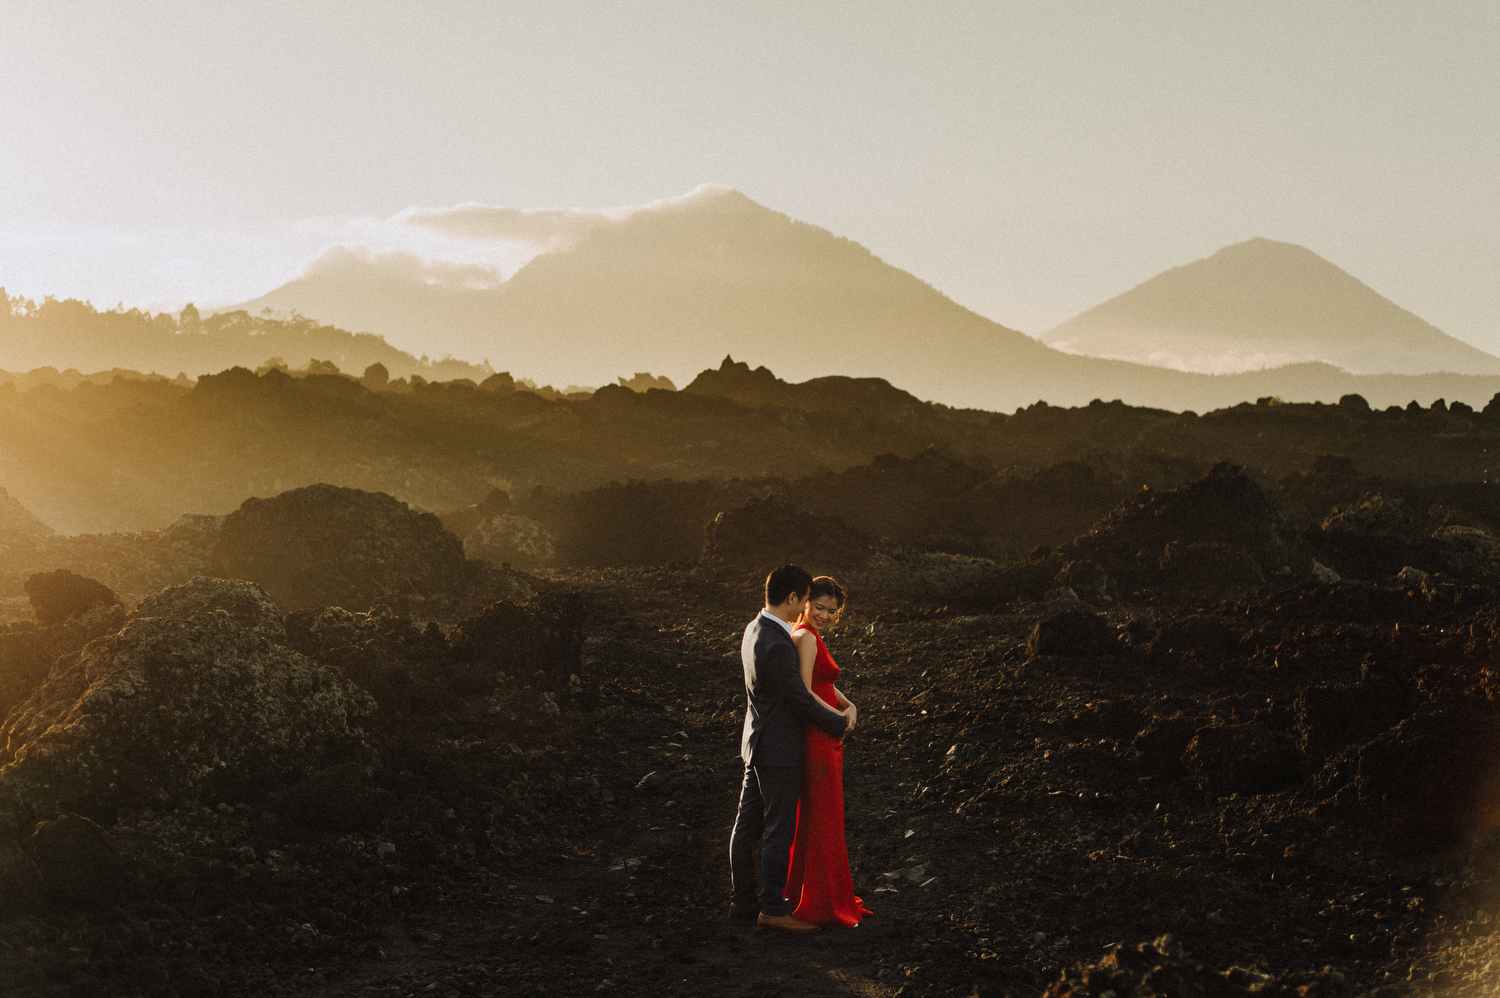 preweddinginbali-bali-batur-ubud-diktatphotography-engagemnet-baliweddingphotographer-weddinginbali-6